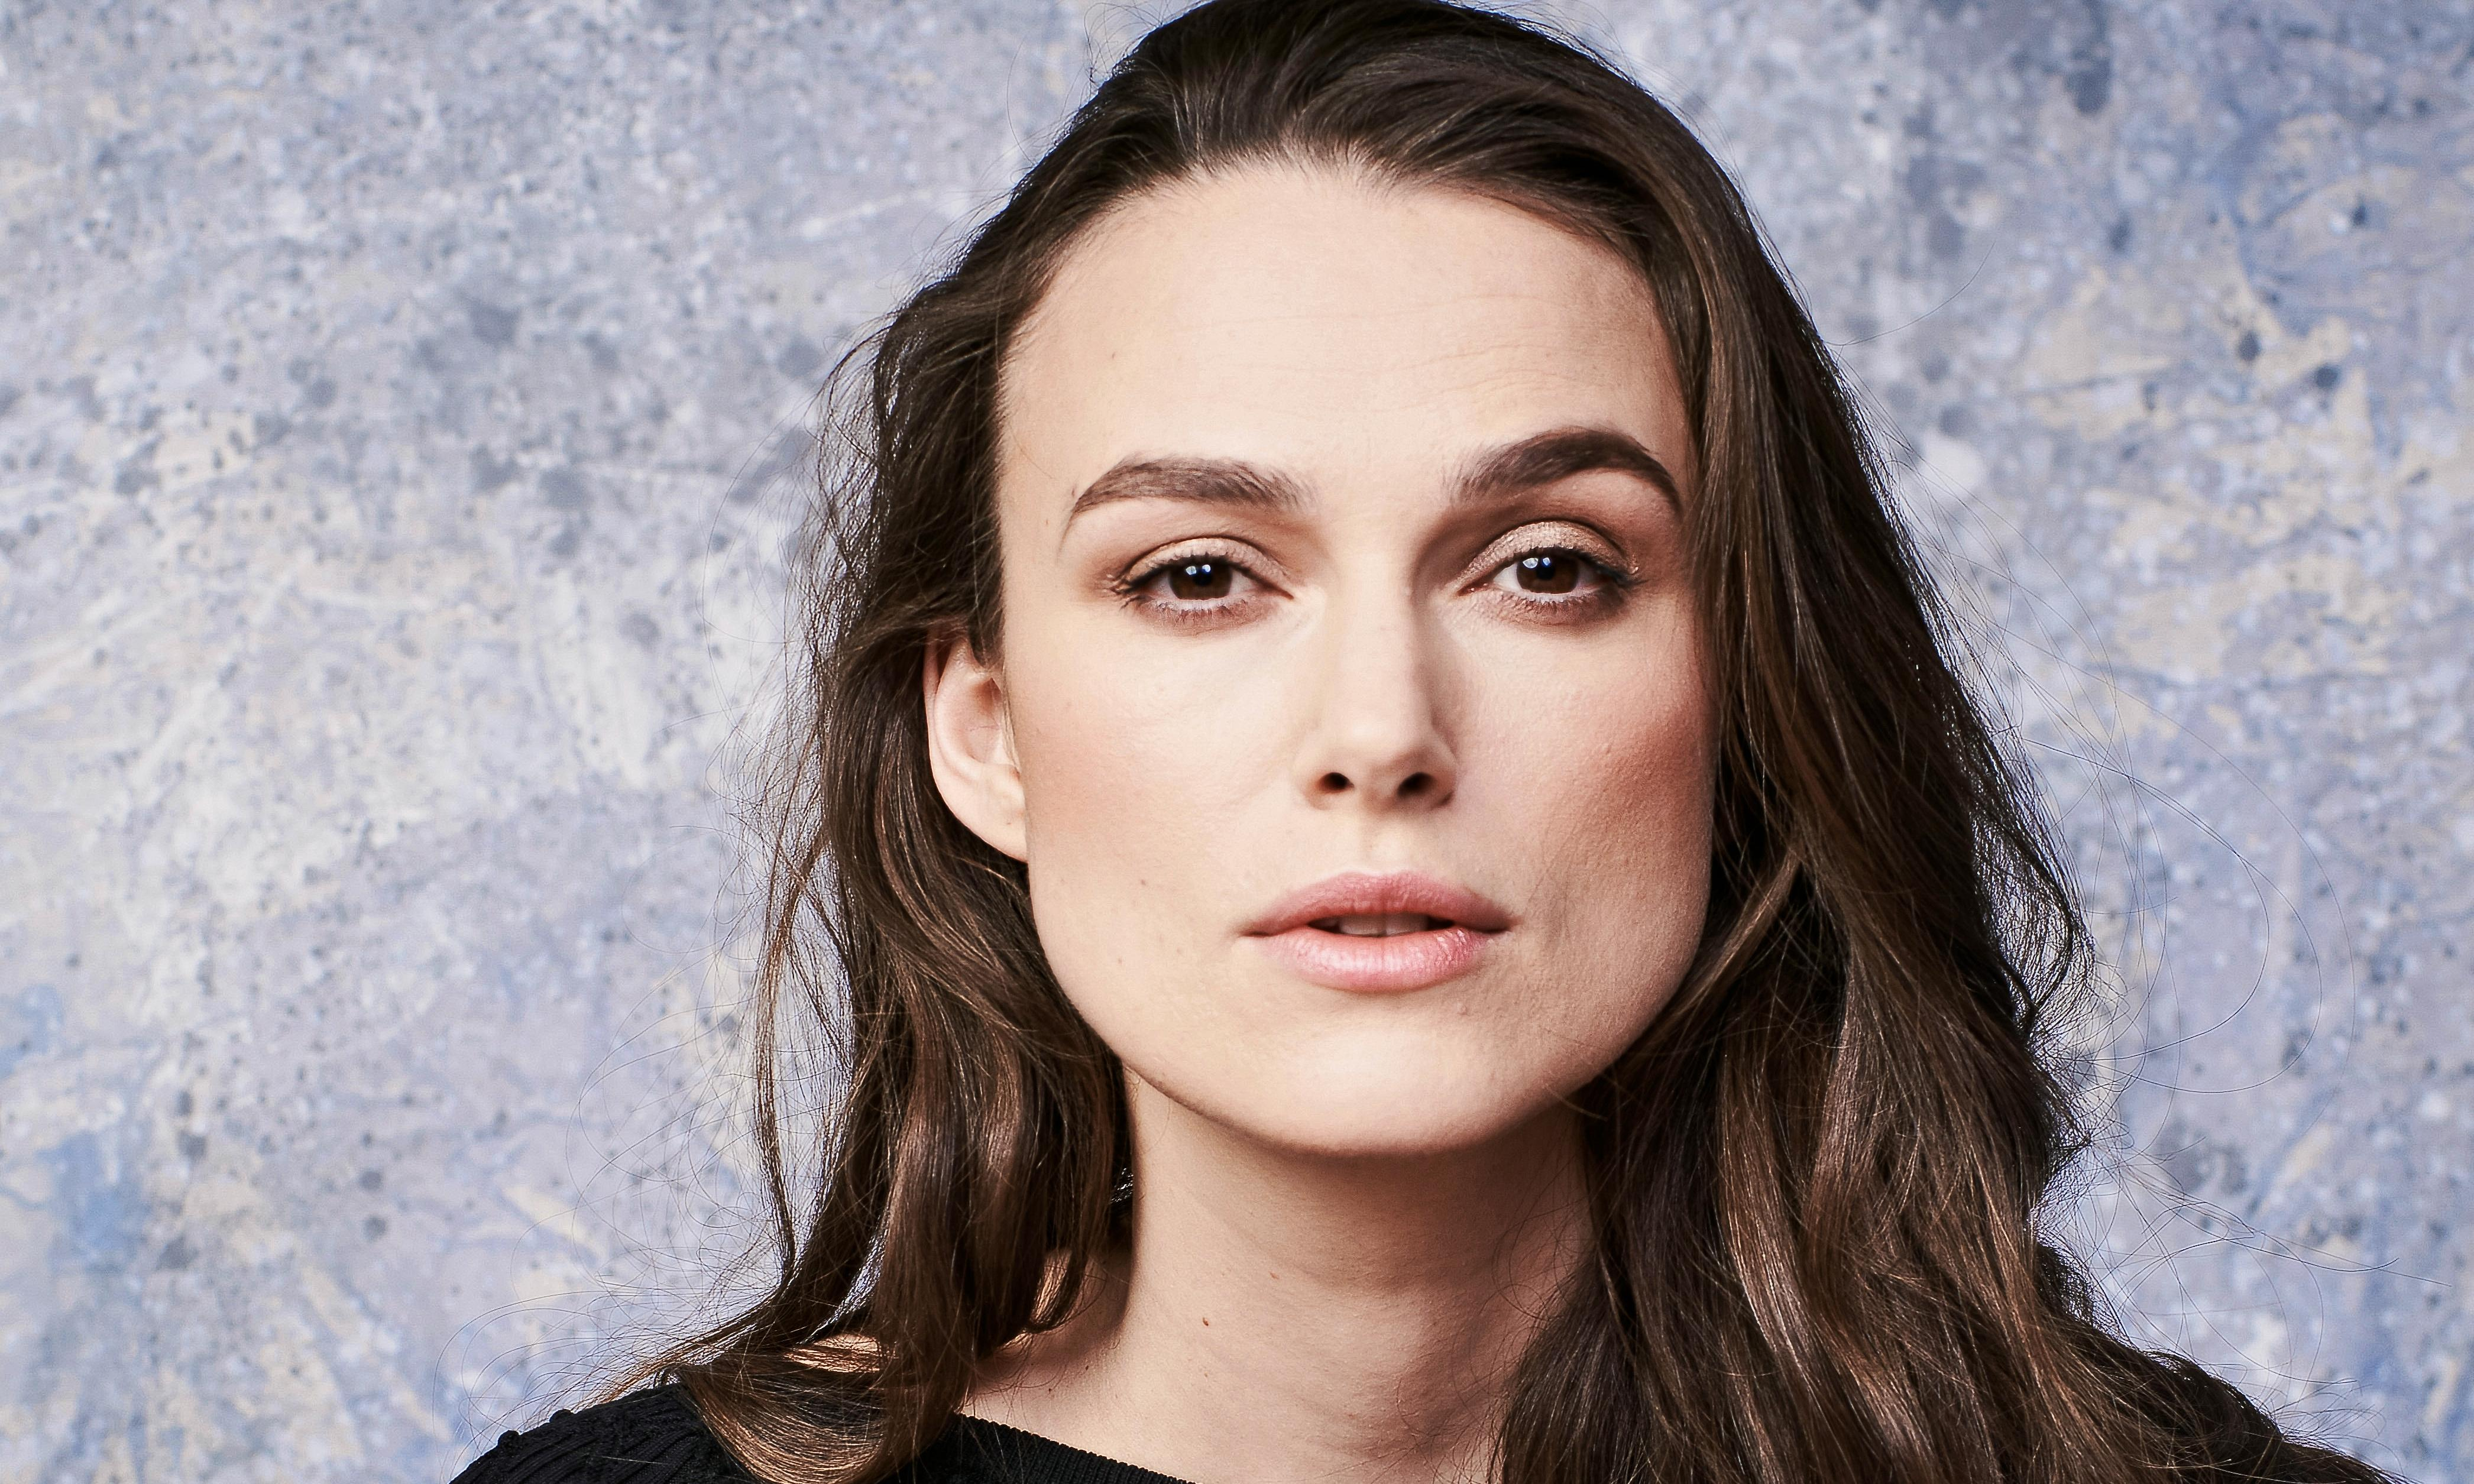 Keira Knightley: 'I can't act the flirt or mother to get my voice heard. It makes me feel sick'